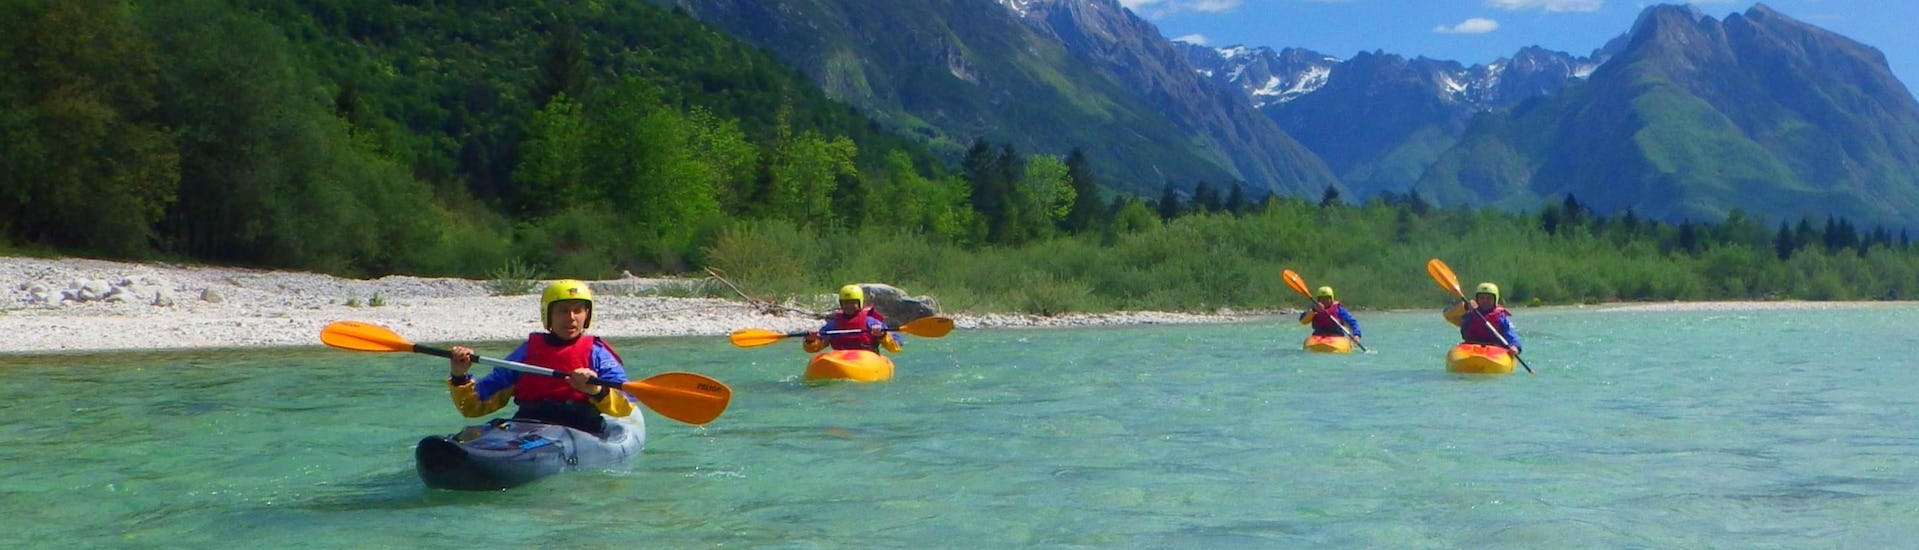 guided-kayak-tour-on-the-soca-river-top-rafting-hero